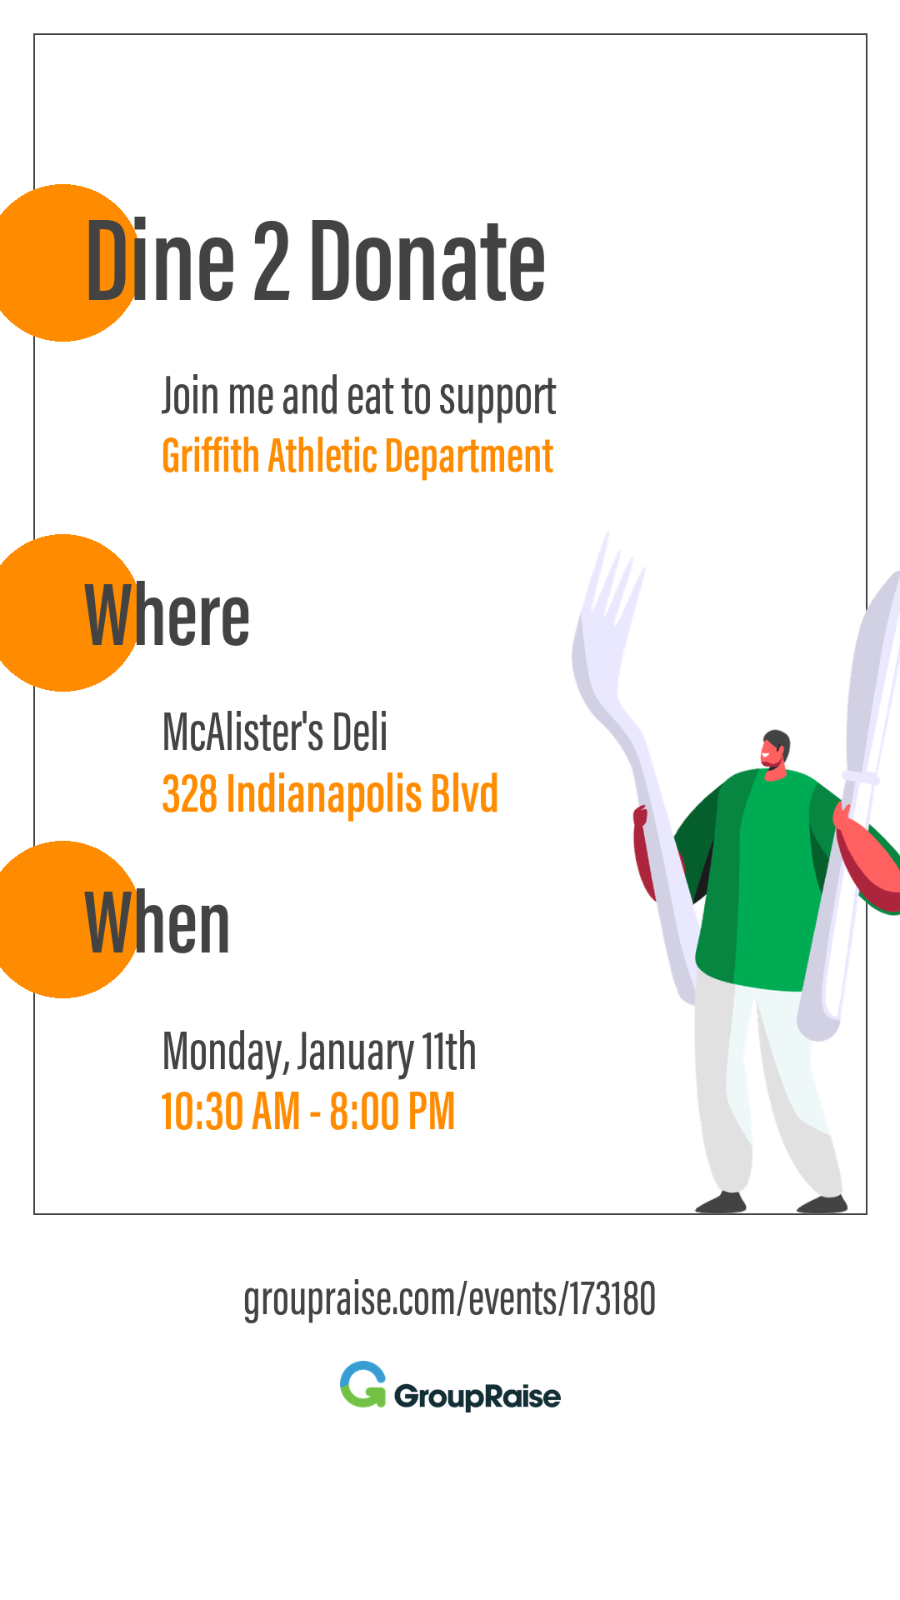 Tell your friends & family you already have dinner plans today with GHS!